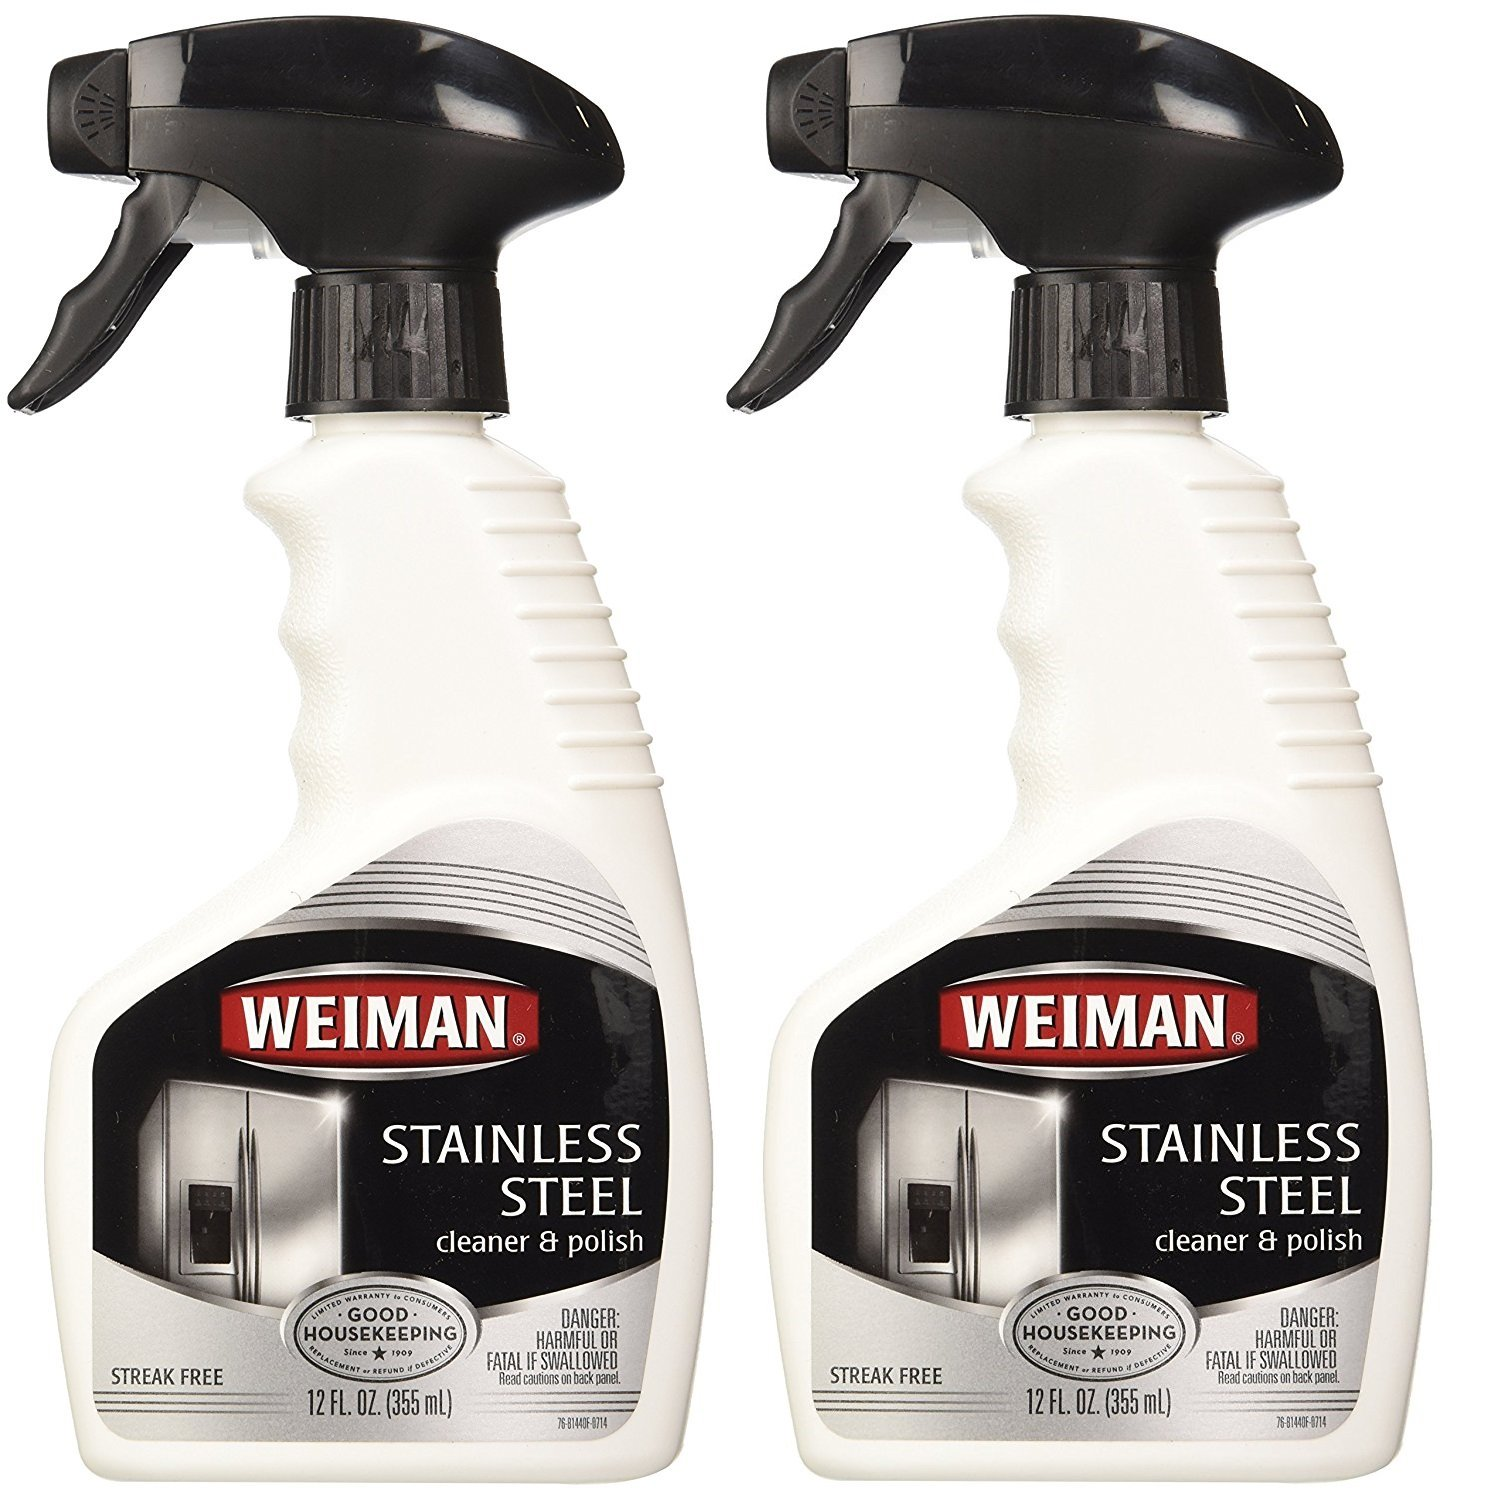 Weiman Stainless Steel Cleaner U0026 Polish Trigger Spray   Protects Appliances  From Fingerprints And Leaves A